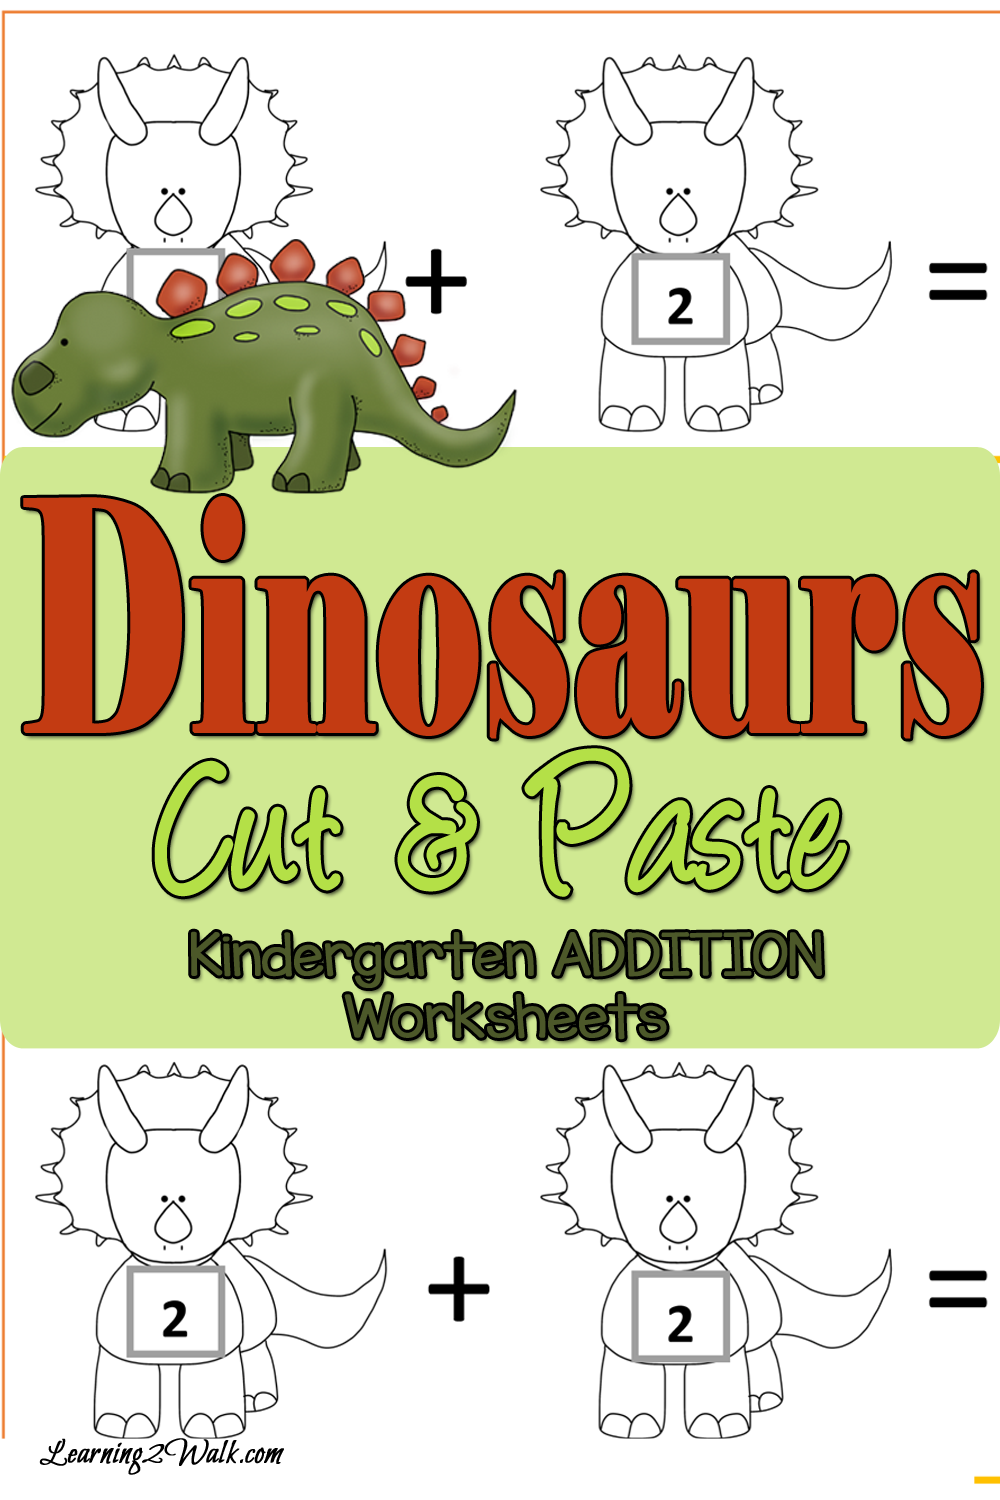 FREE Dinosaurs Cut and Paste Addition Worksheets | Free ...